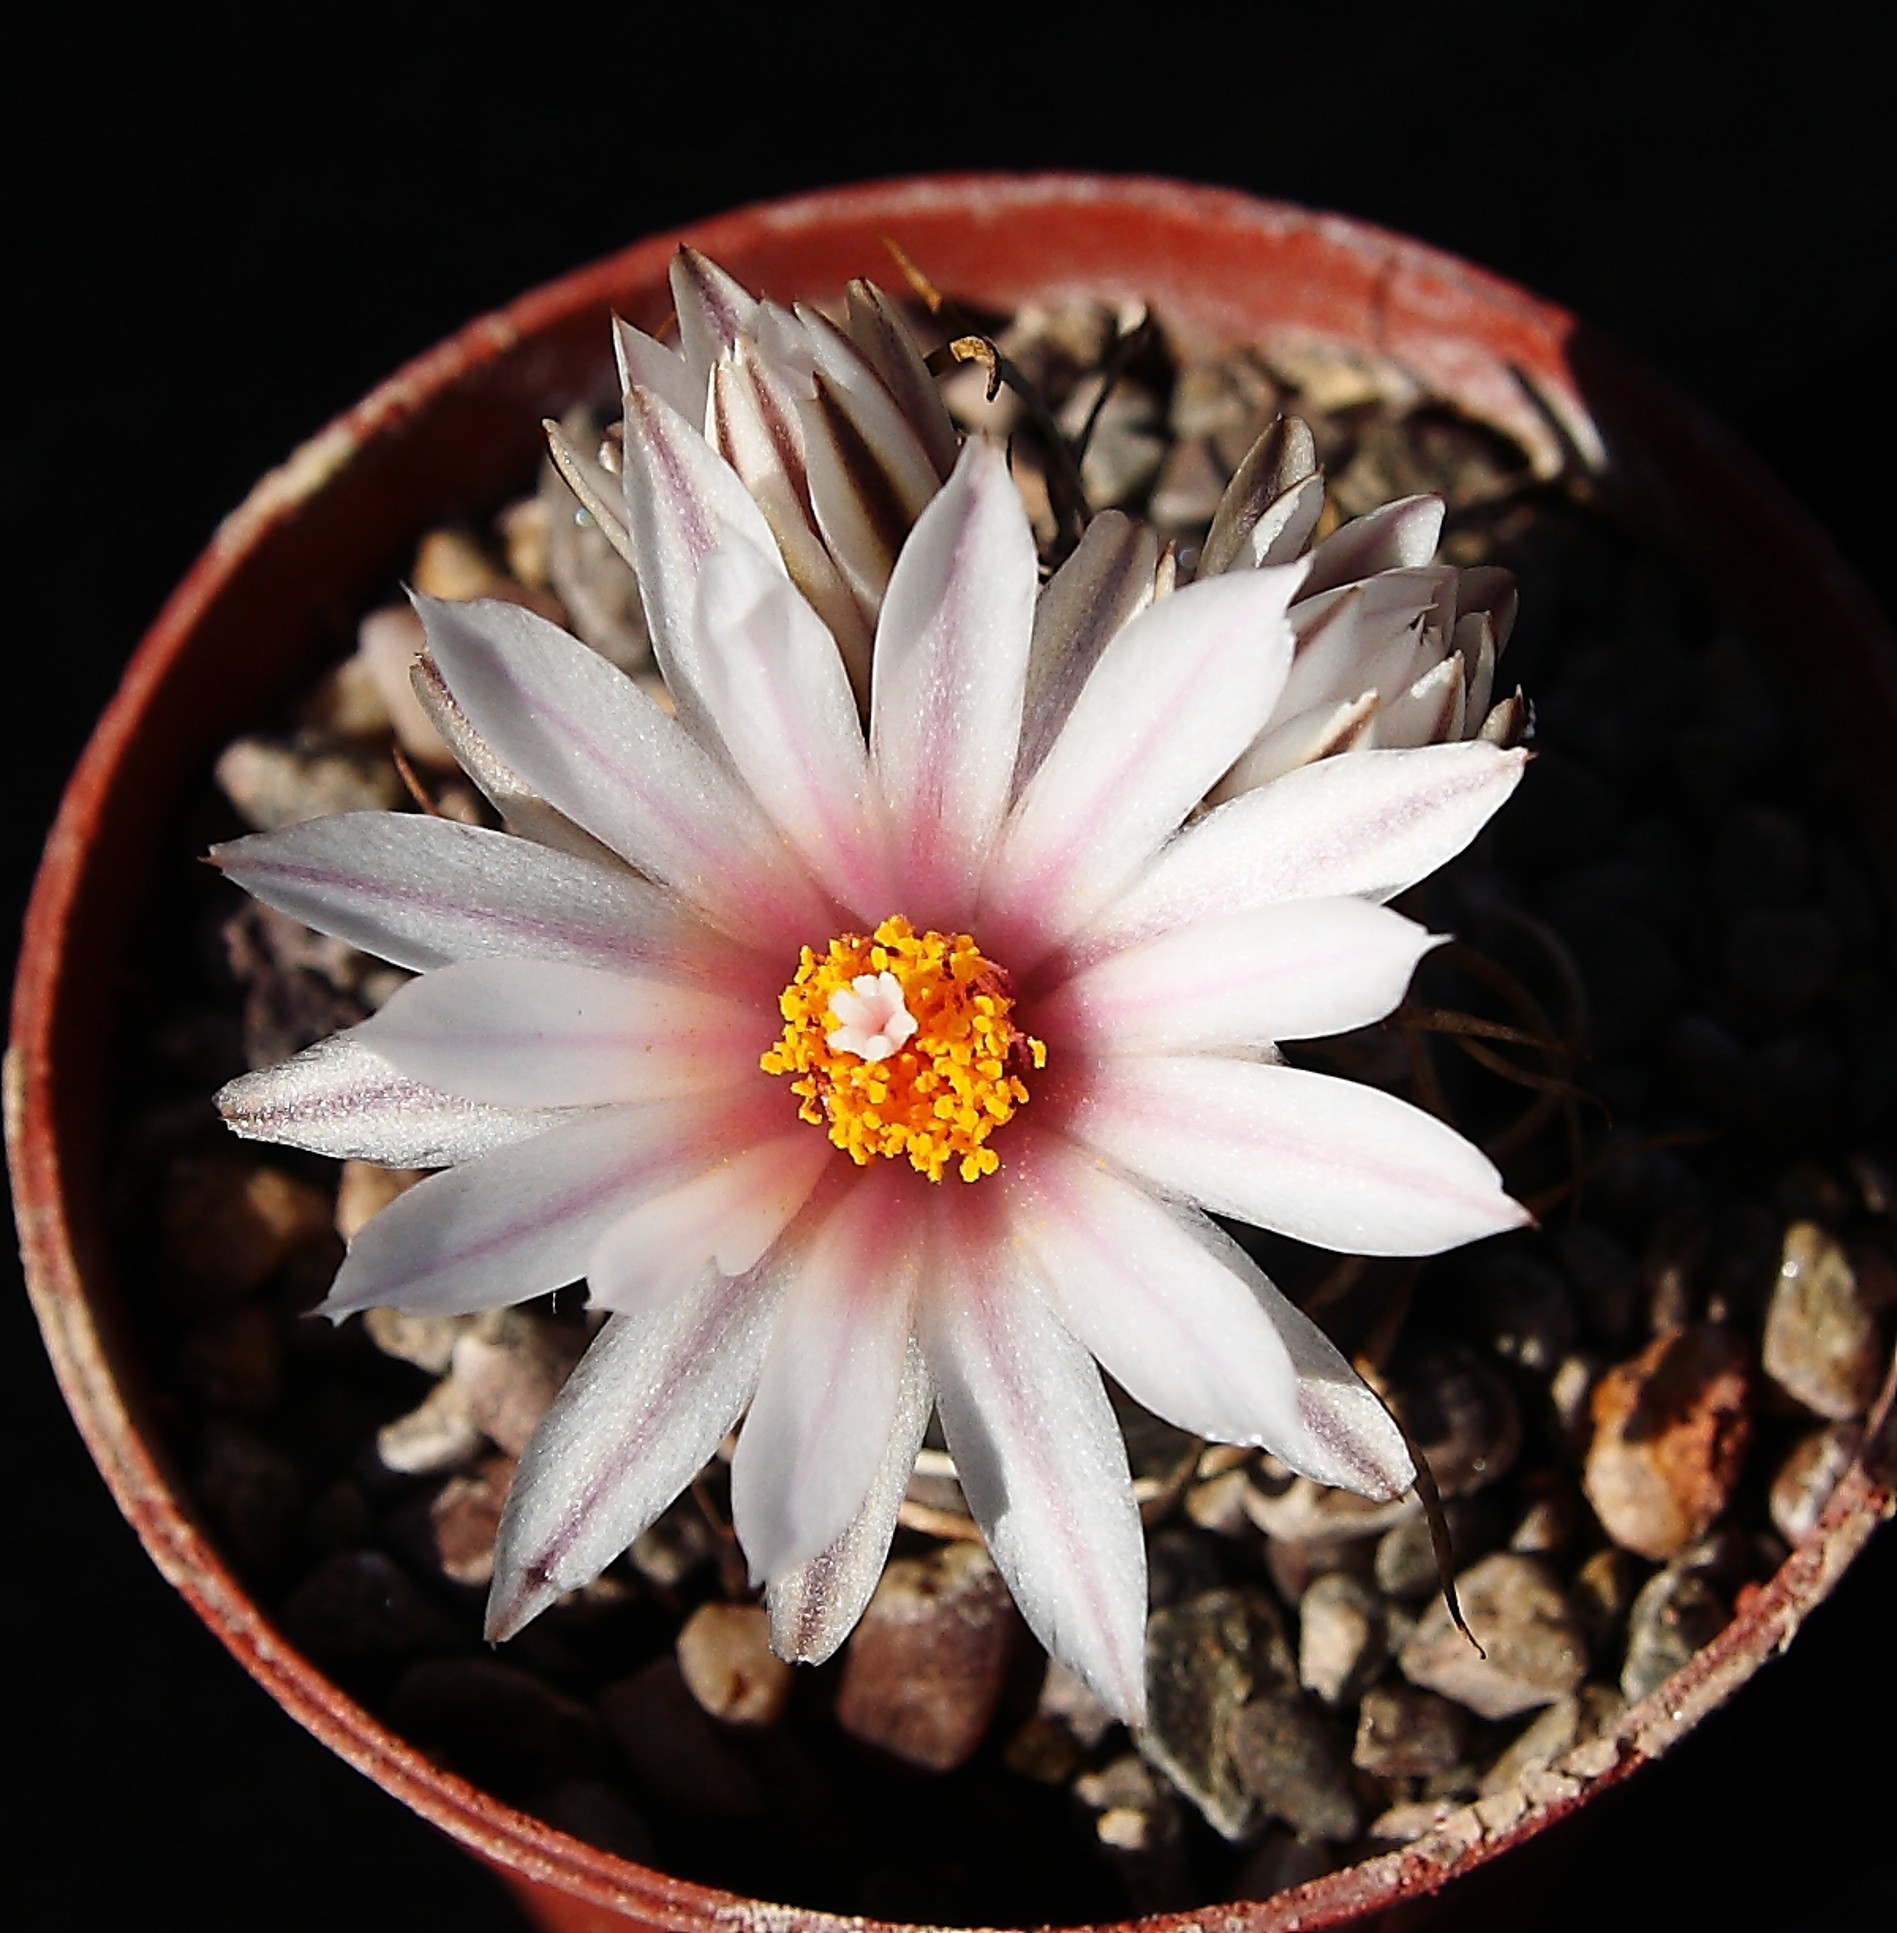 Turbinicarpus frailensis flower & buds 18 April 2015 (2).JPG